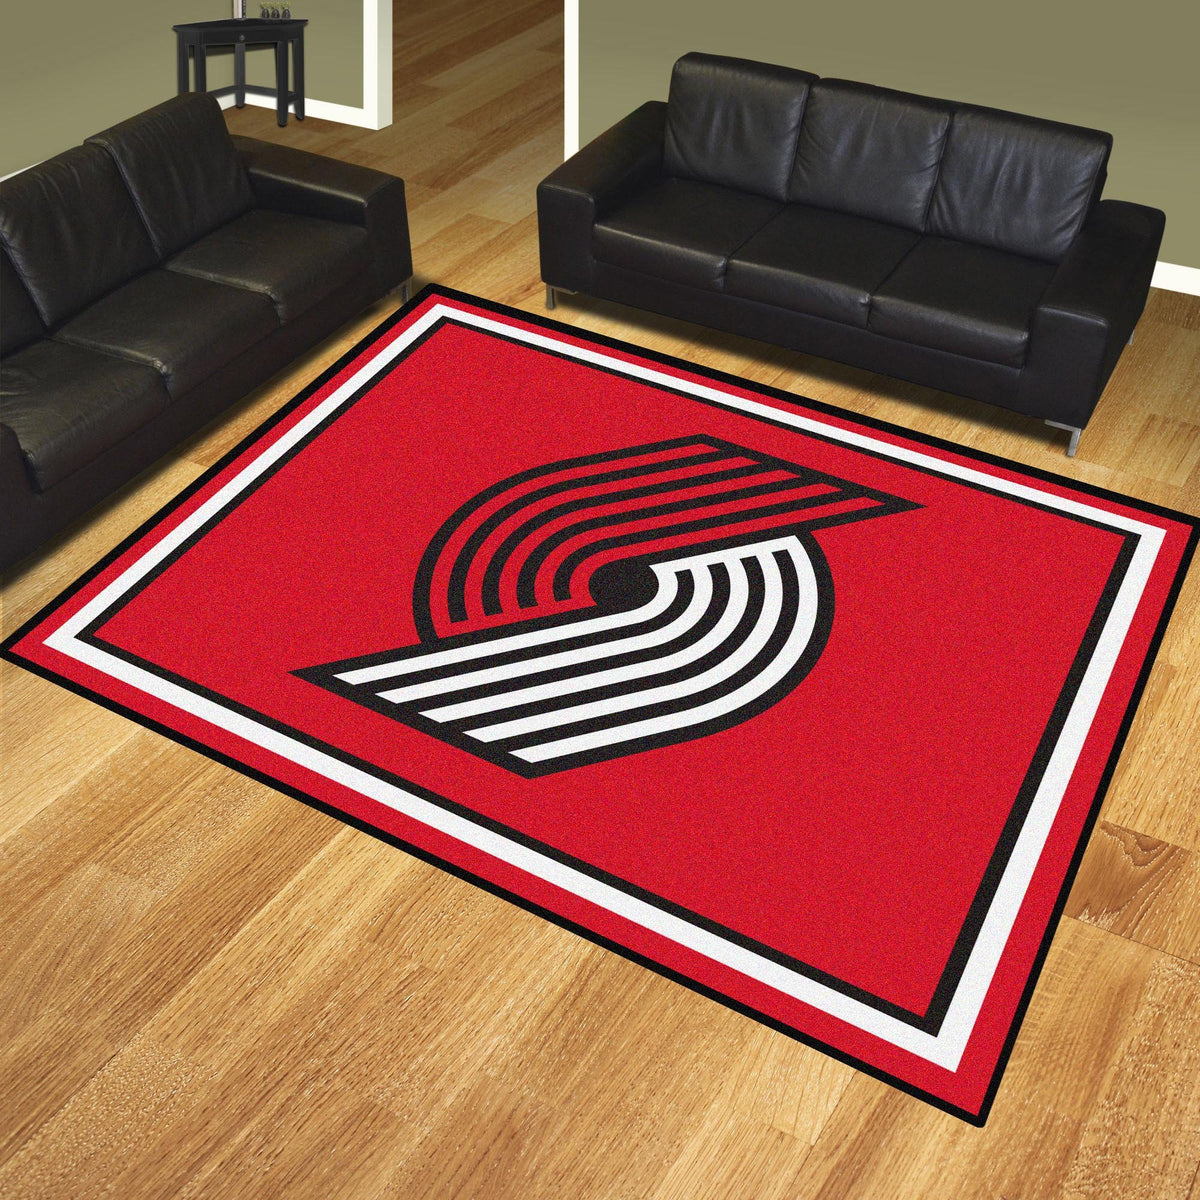 NBA - 8' x 10' Rug NBA Mats, Plush Rugs, 8x10 Rug, NBA, Home Fan Mats Portland Trail Blazers